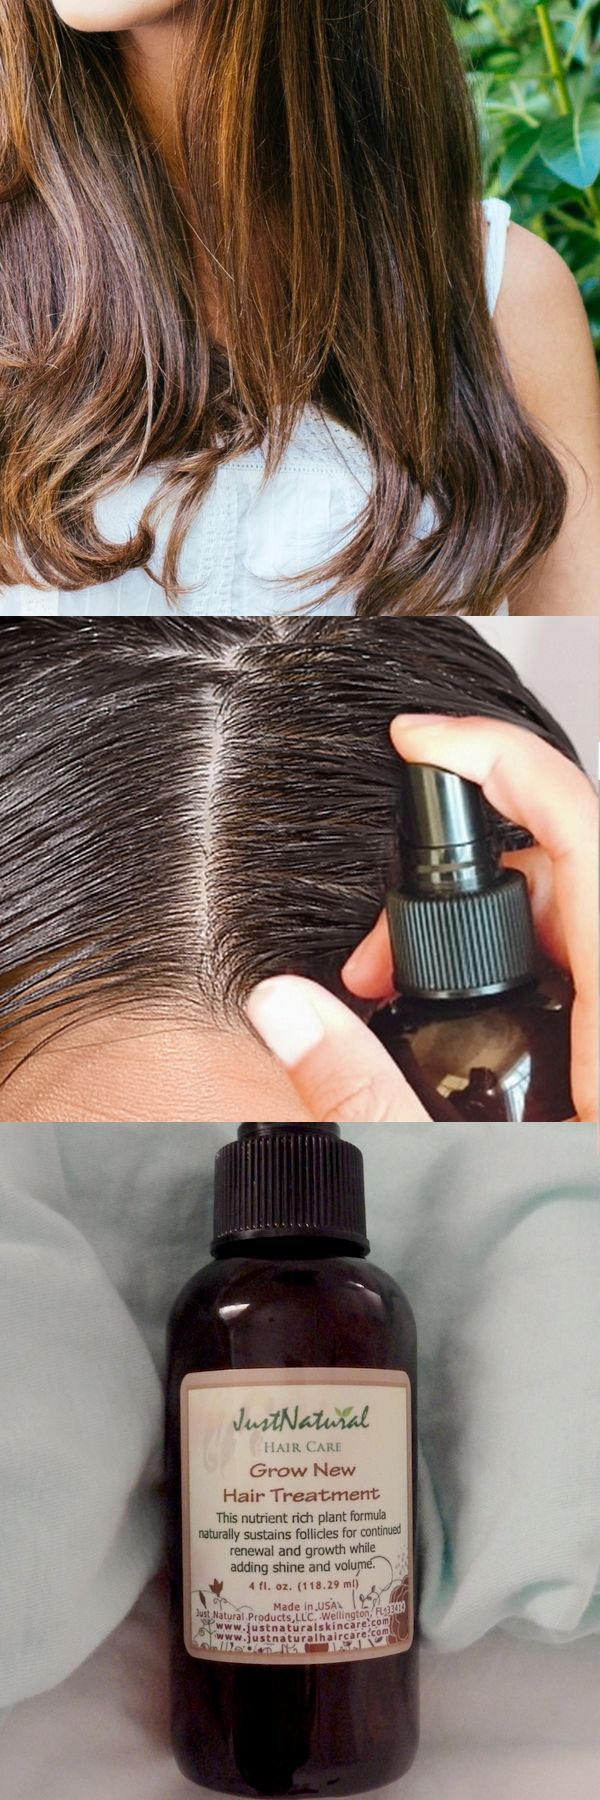 This product is the best for hair loss. I've been using it for 2 years now and my hair growth has been amazing. I even use it on my daughters to ensure that the daily stress that they put on their hair doesn't result in hair loss. I highly recommend this product.